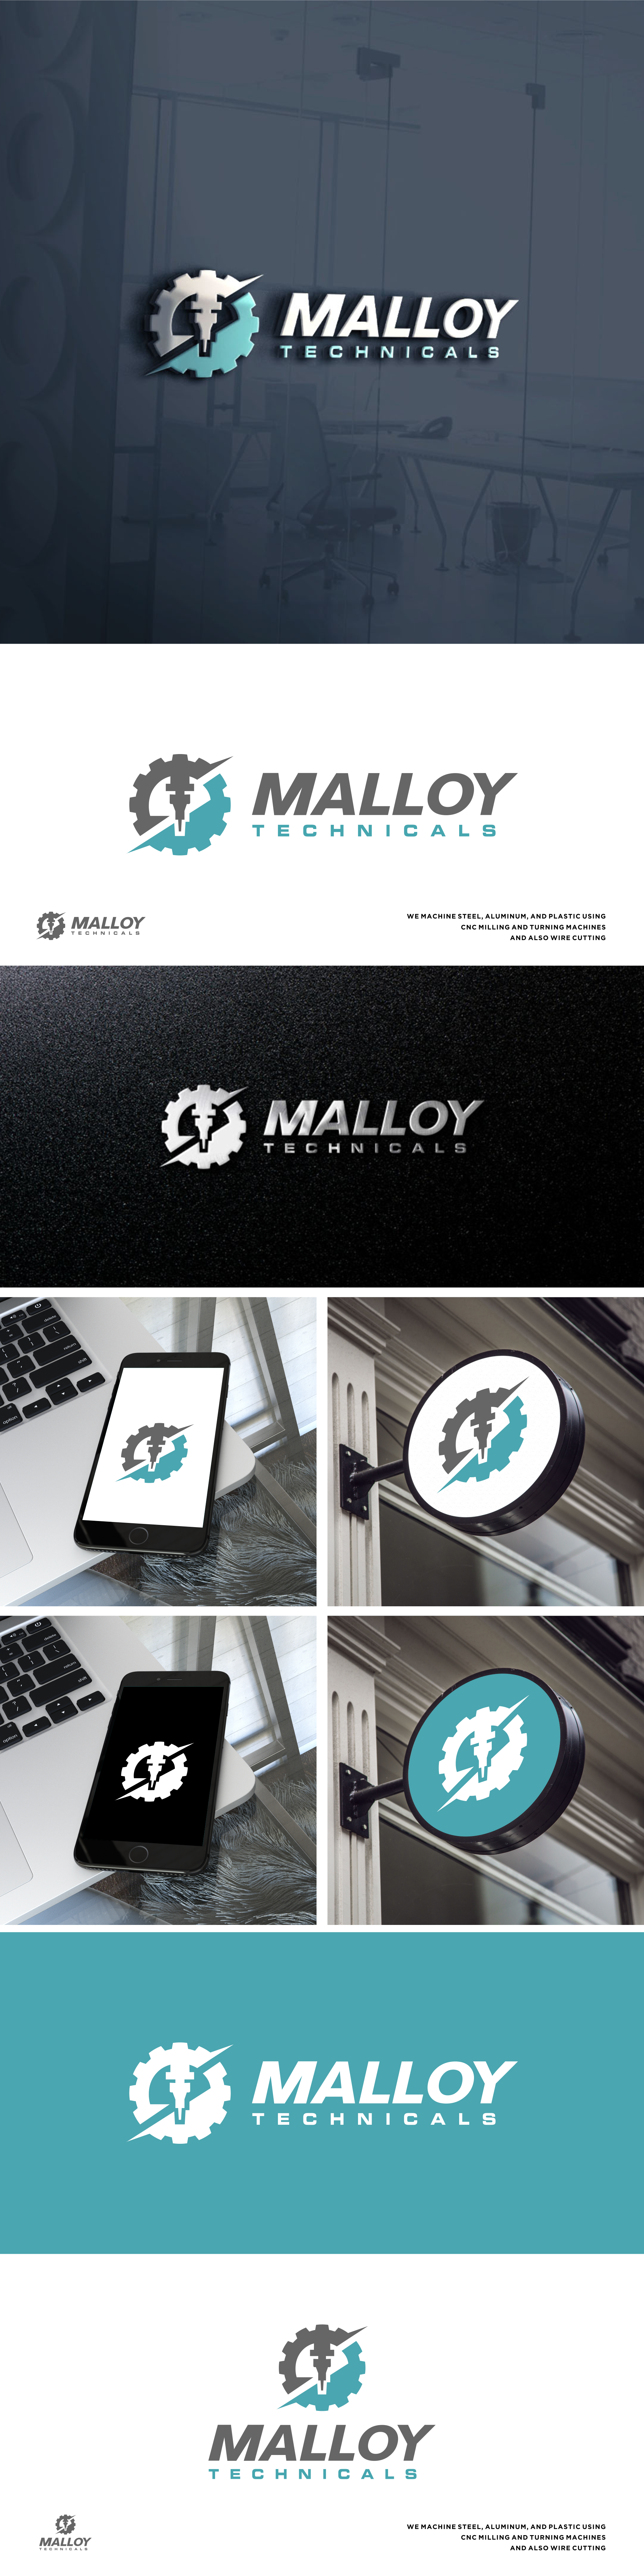 Malloy Technicals  Maschining with power and Precision